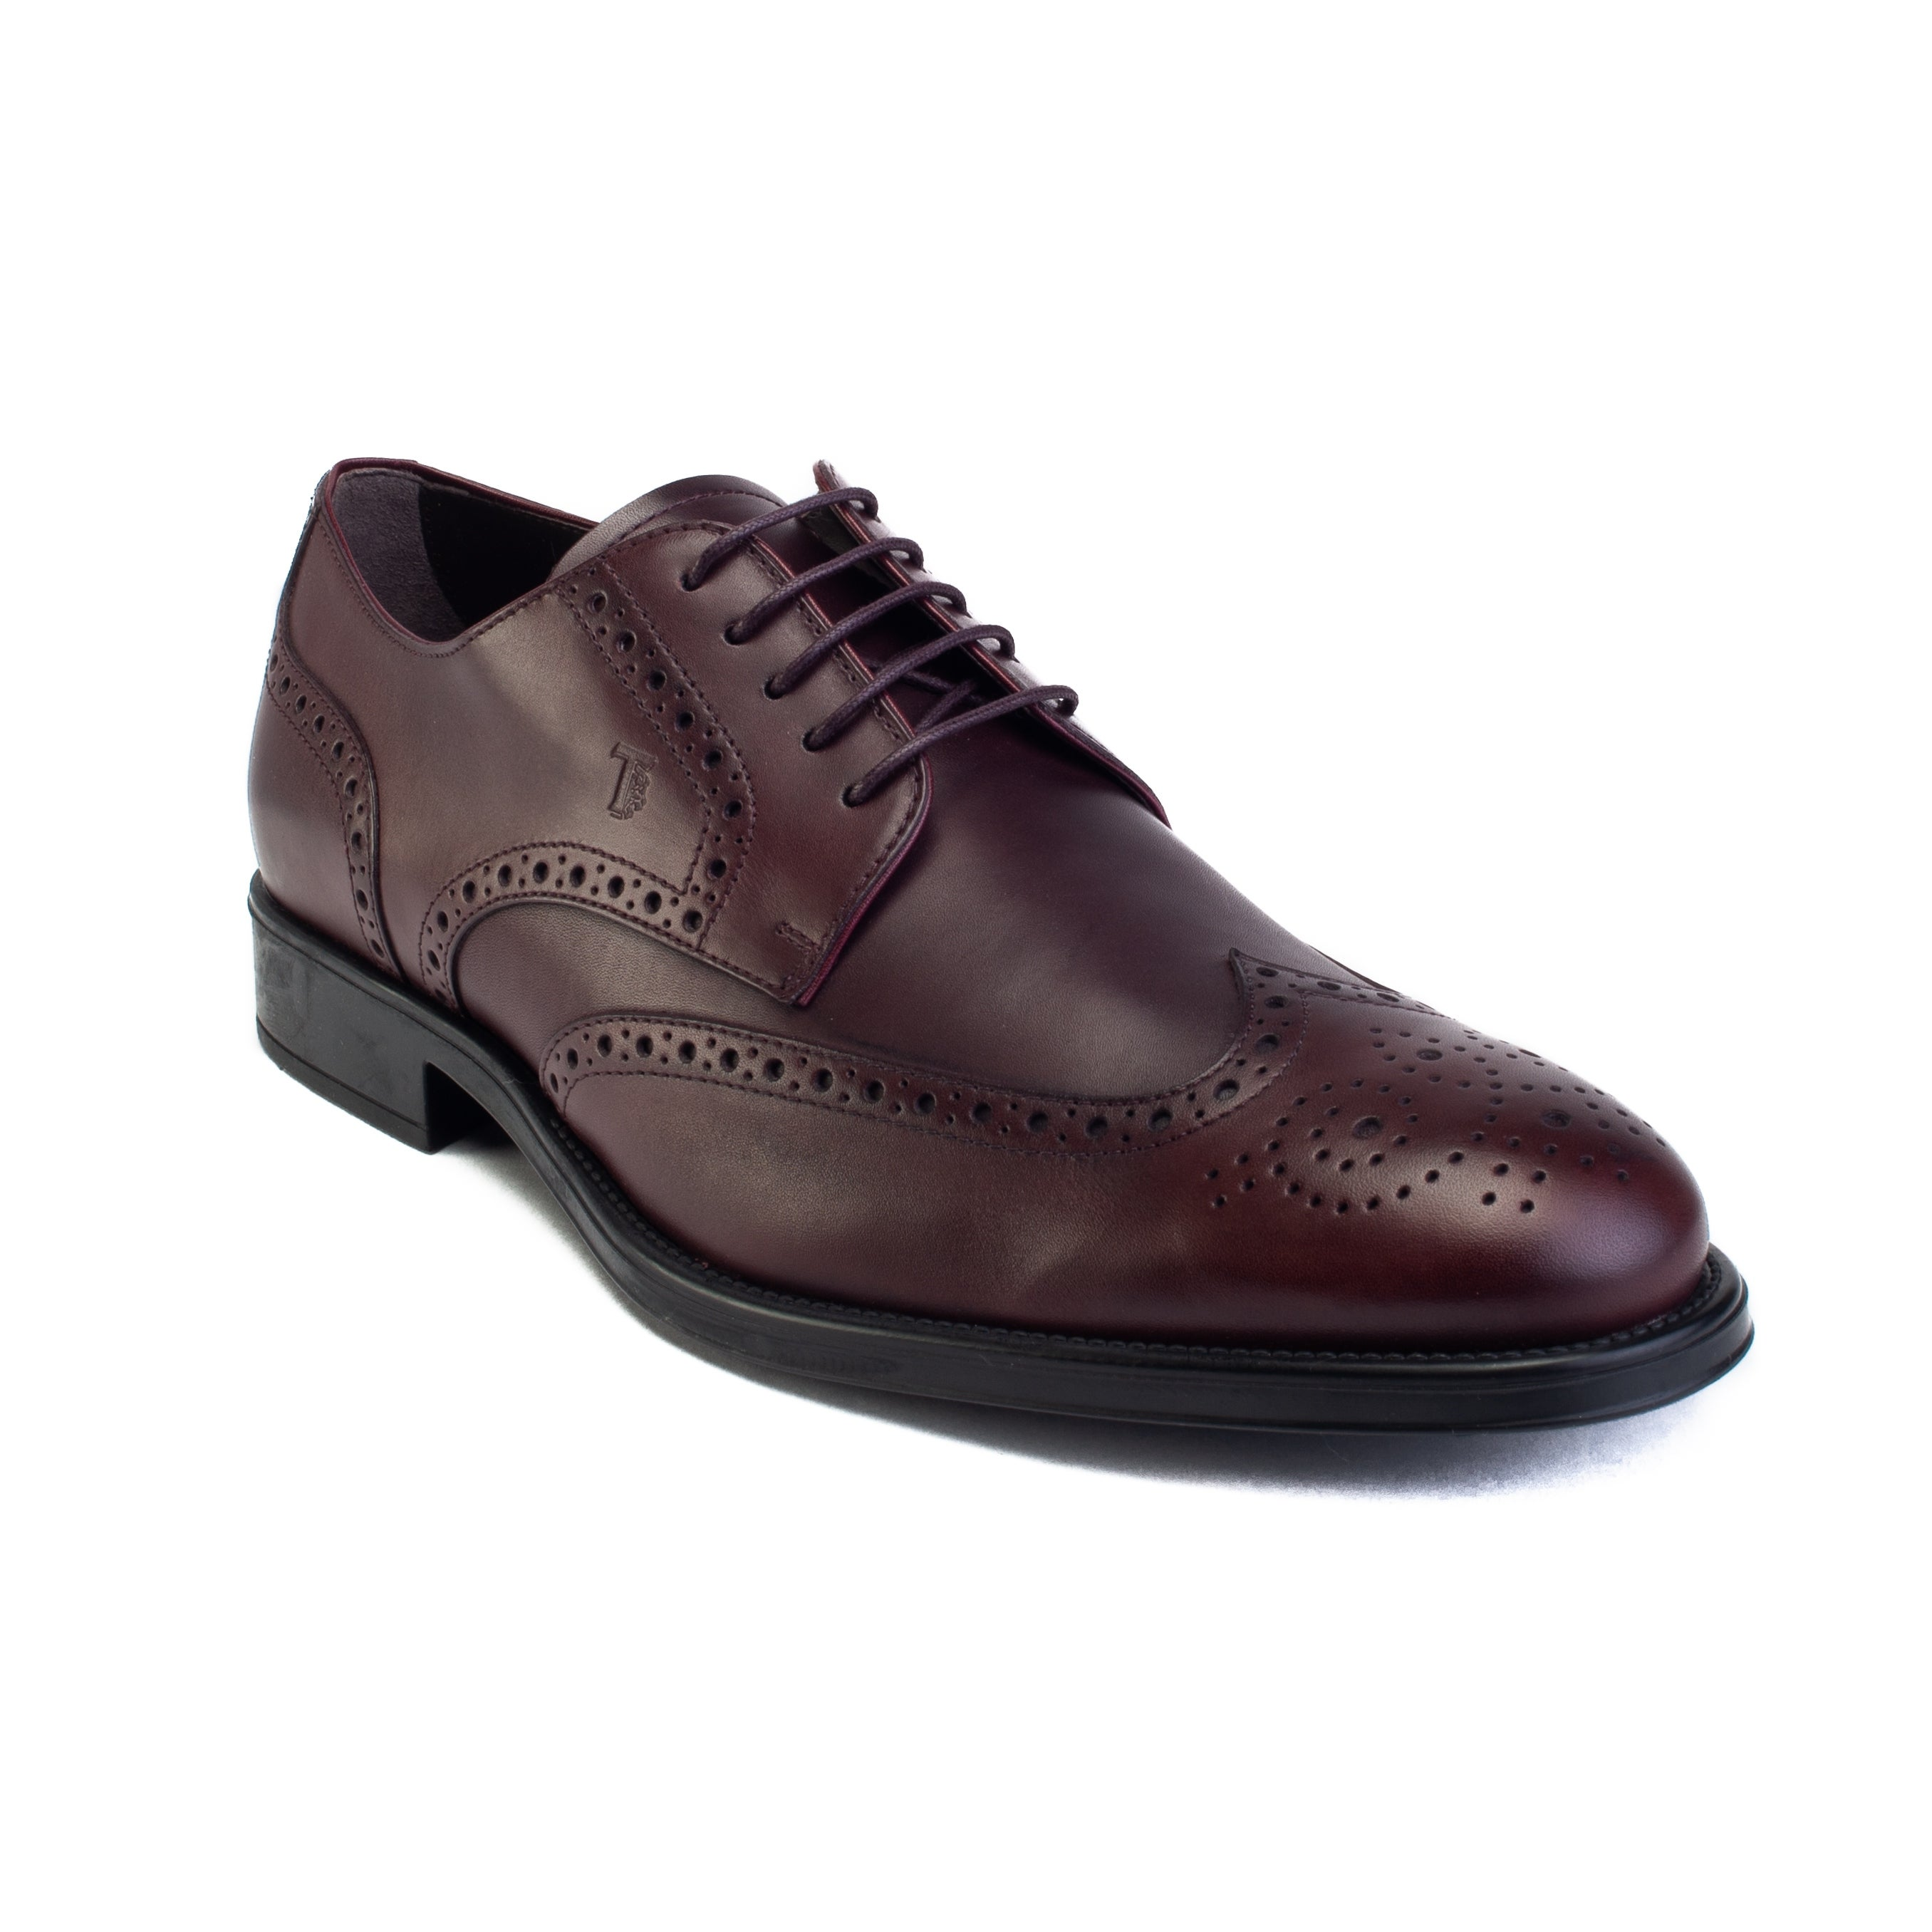 Mens Dress Shoes Derby Wingtip Lace Up Broguing Cap Toe  Dark Brown